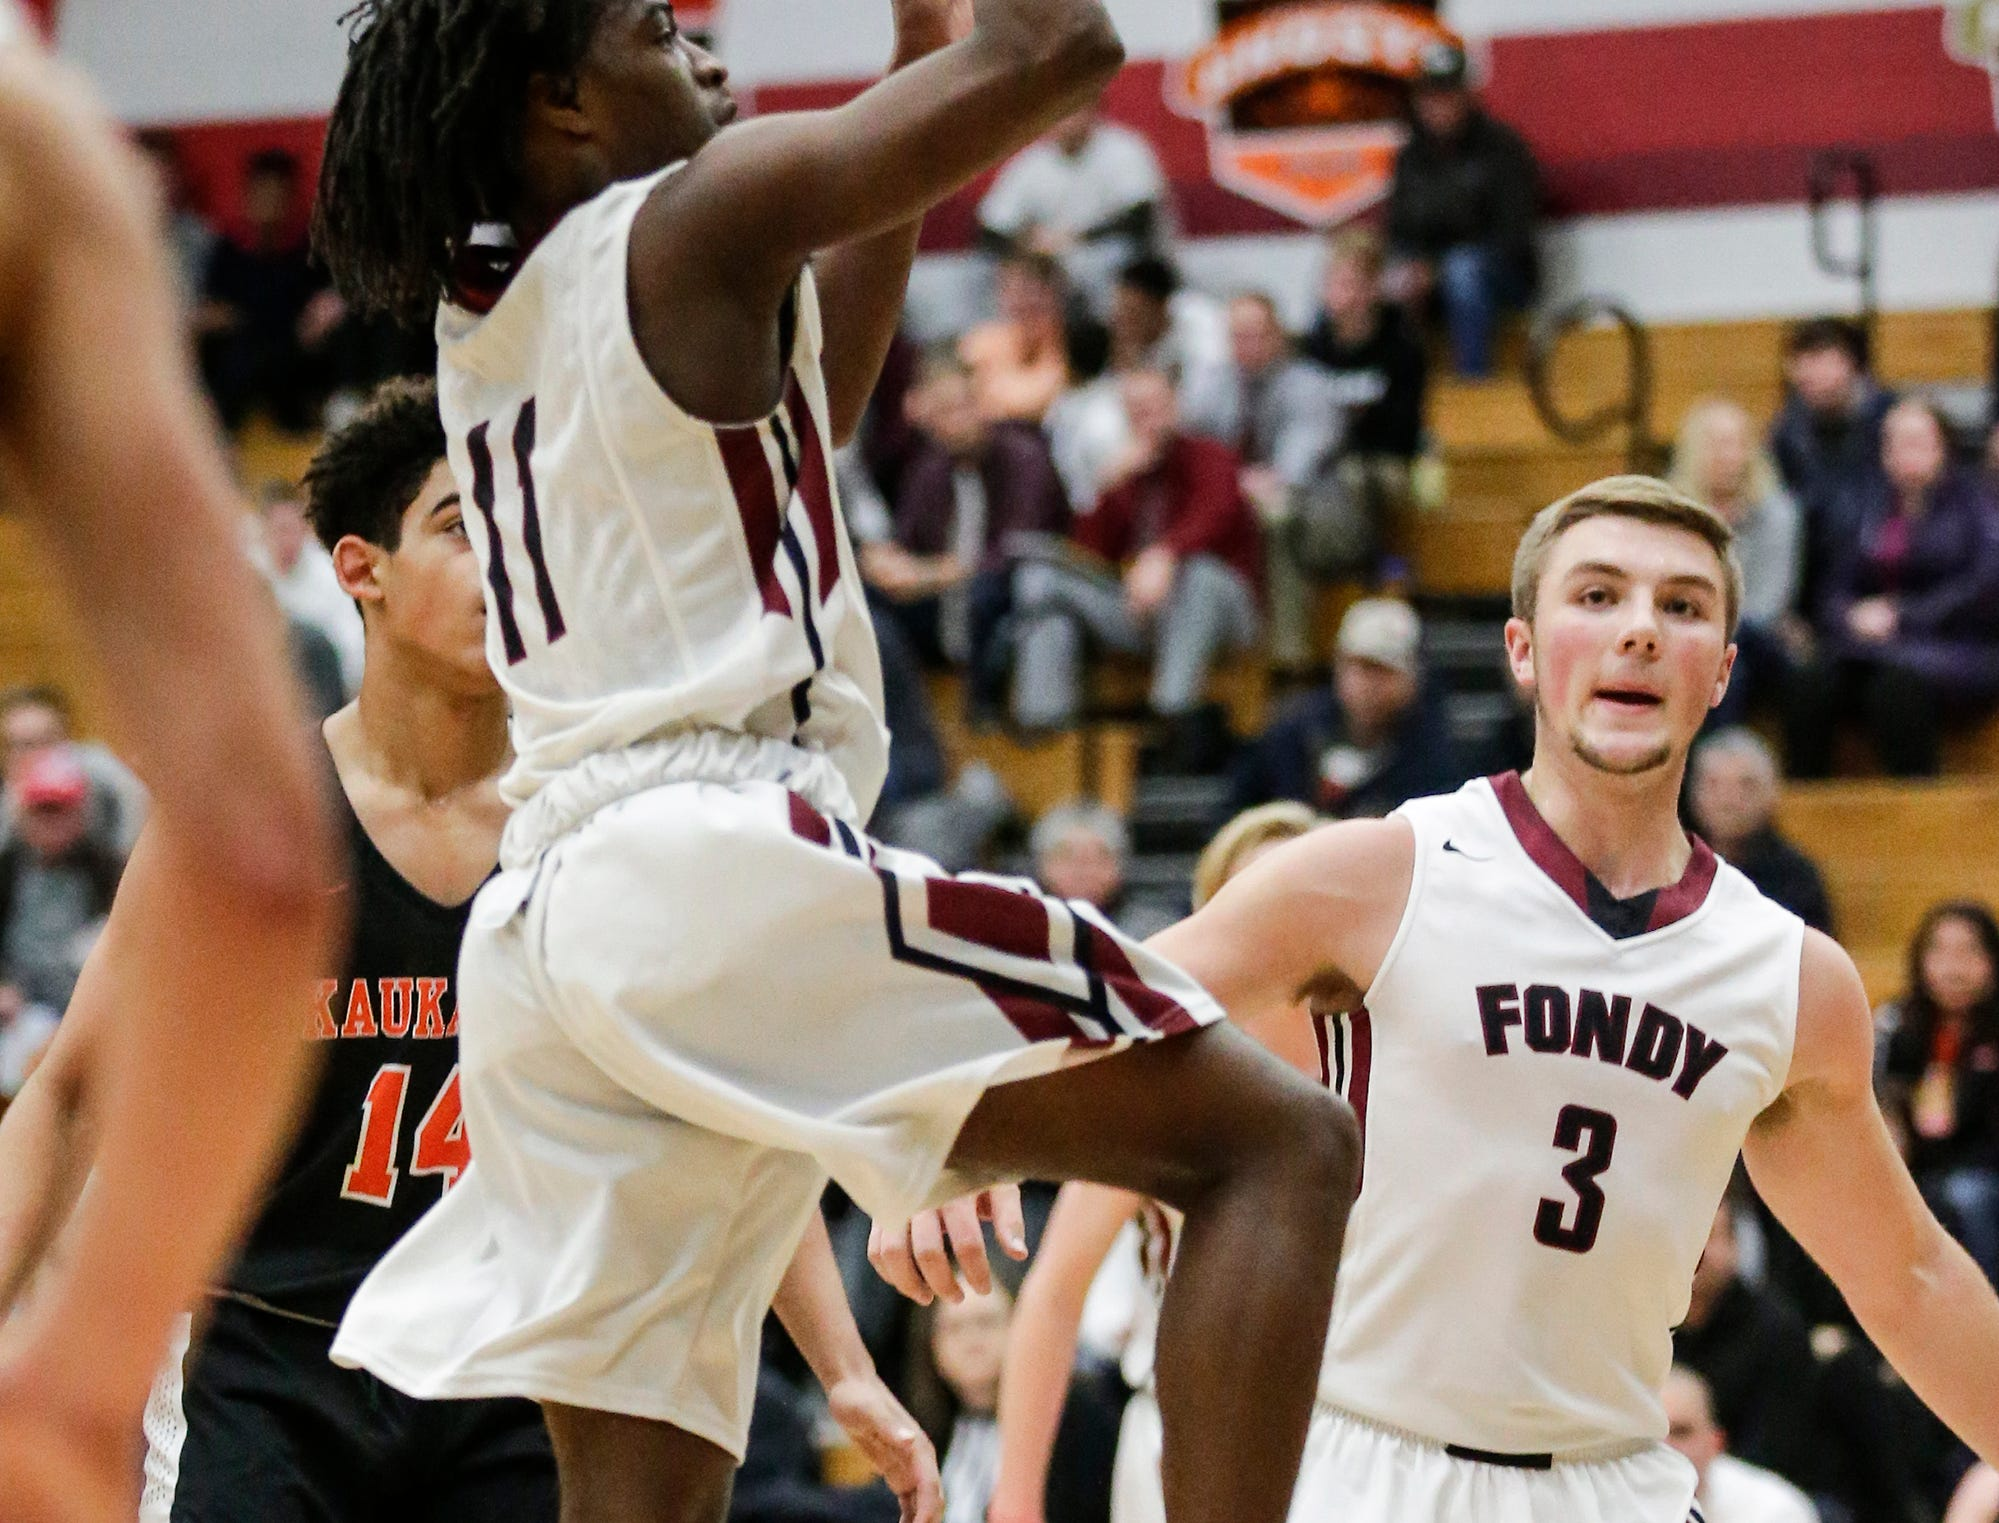 Fond du Lac High School boys basketball's London Perkins goes up for a basket against Kaukauna High School during their game Tuesday, November 27, 2018 in Fond du Lac. Doug Raflik/USA TODAY NETWORK-Wisconsin